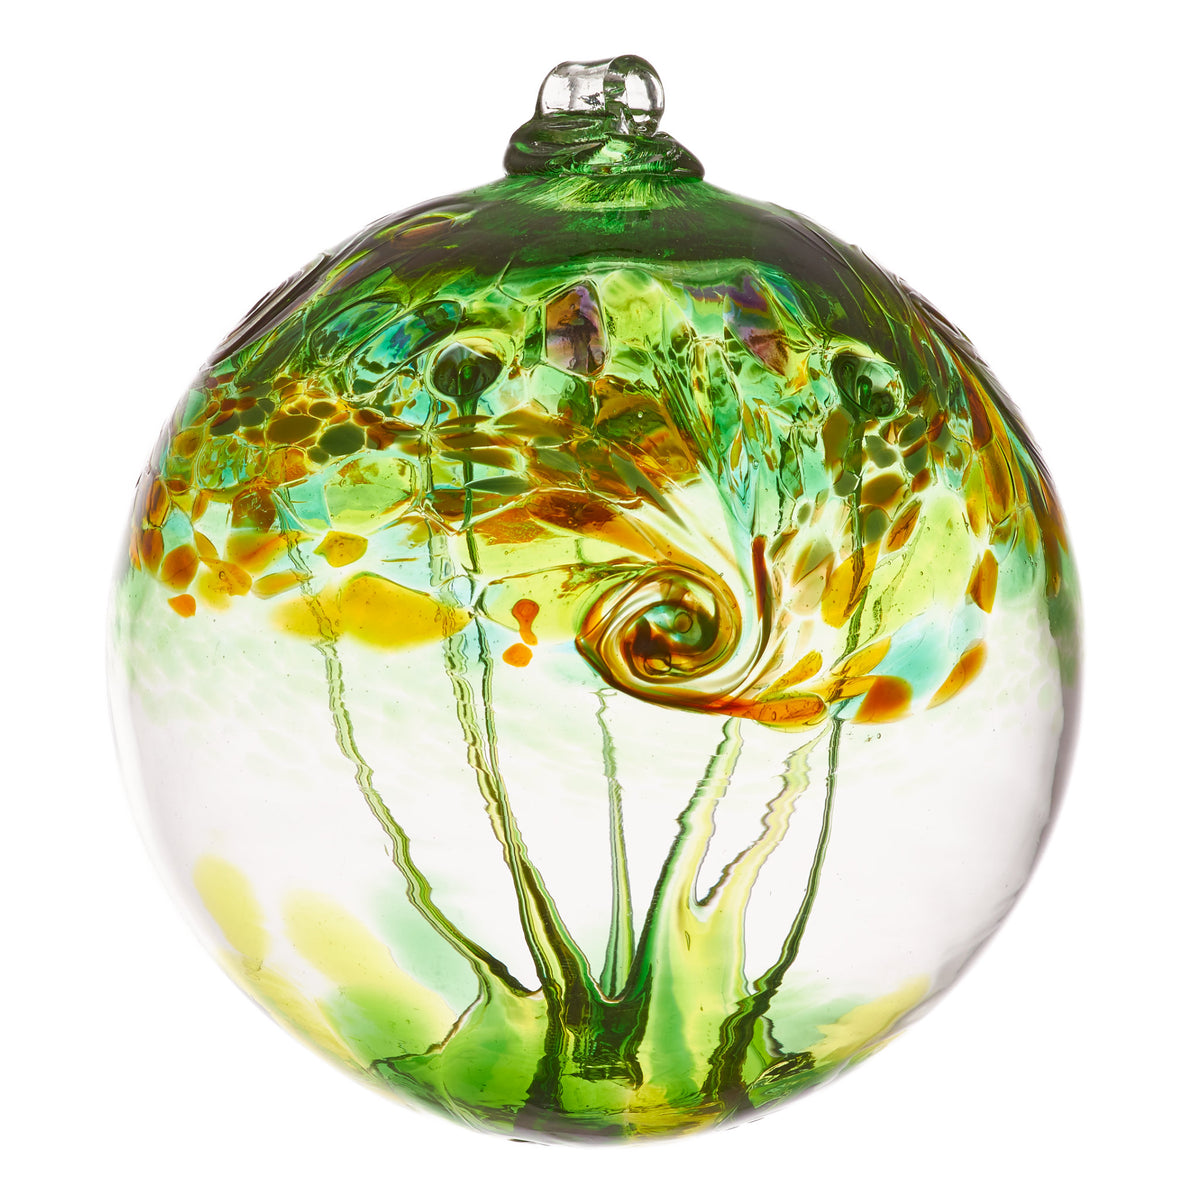 A large clear blown glass ornament whose main color is green with accents of yellow and orange. Dabs of color come together in a swirl at the midpoint, while webs of green glass stretch across the inside of the orb.